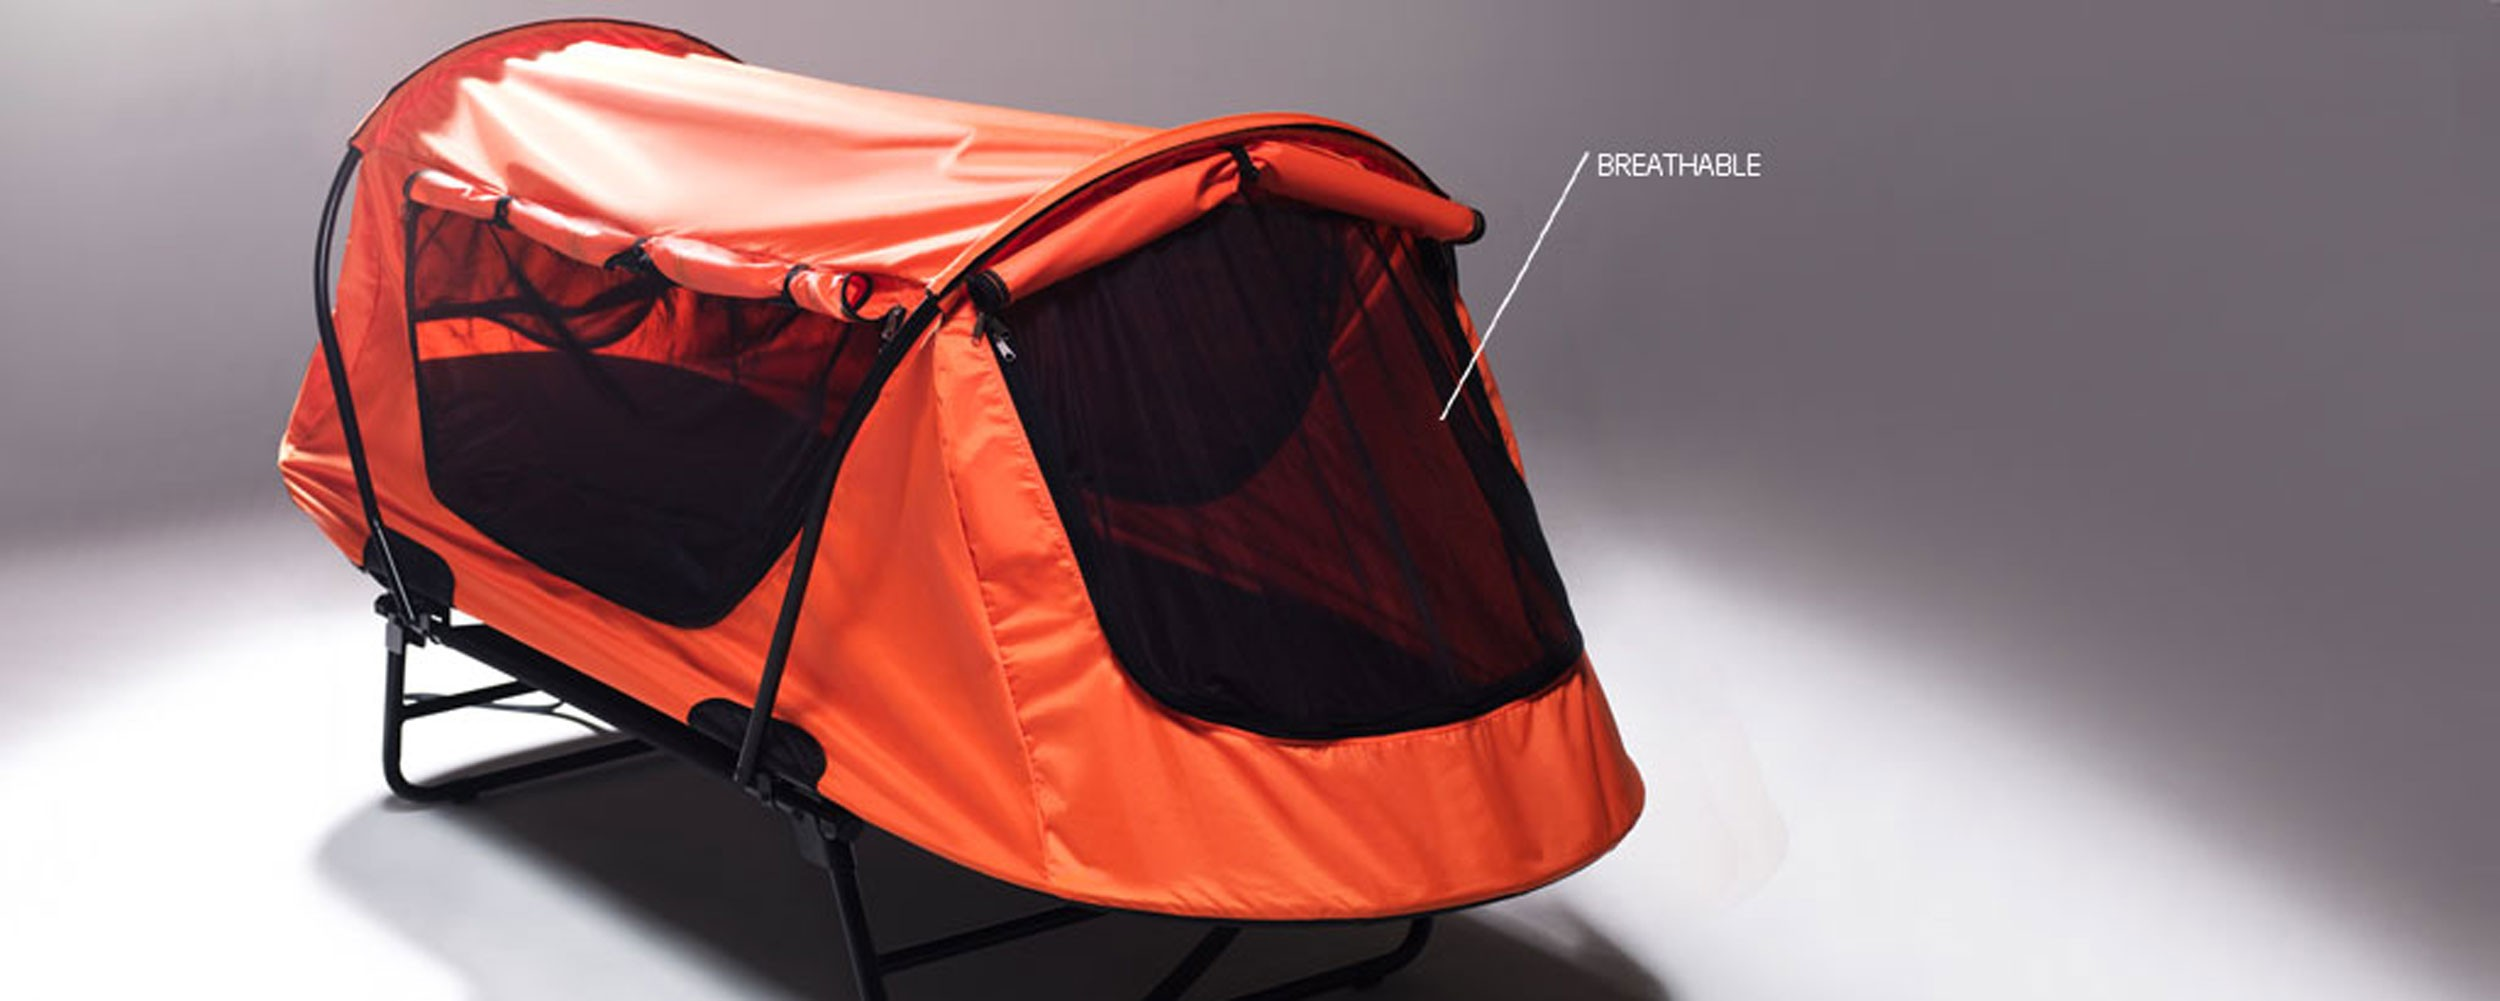 1 Person Smart Tent